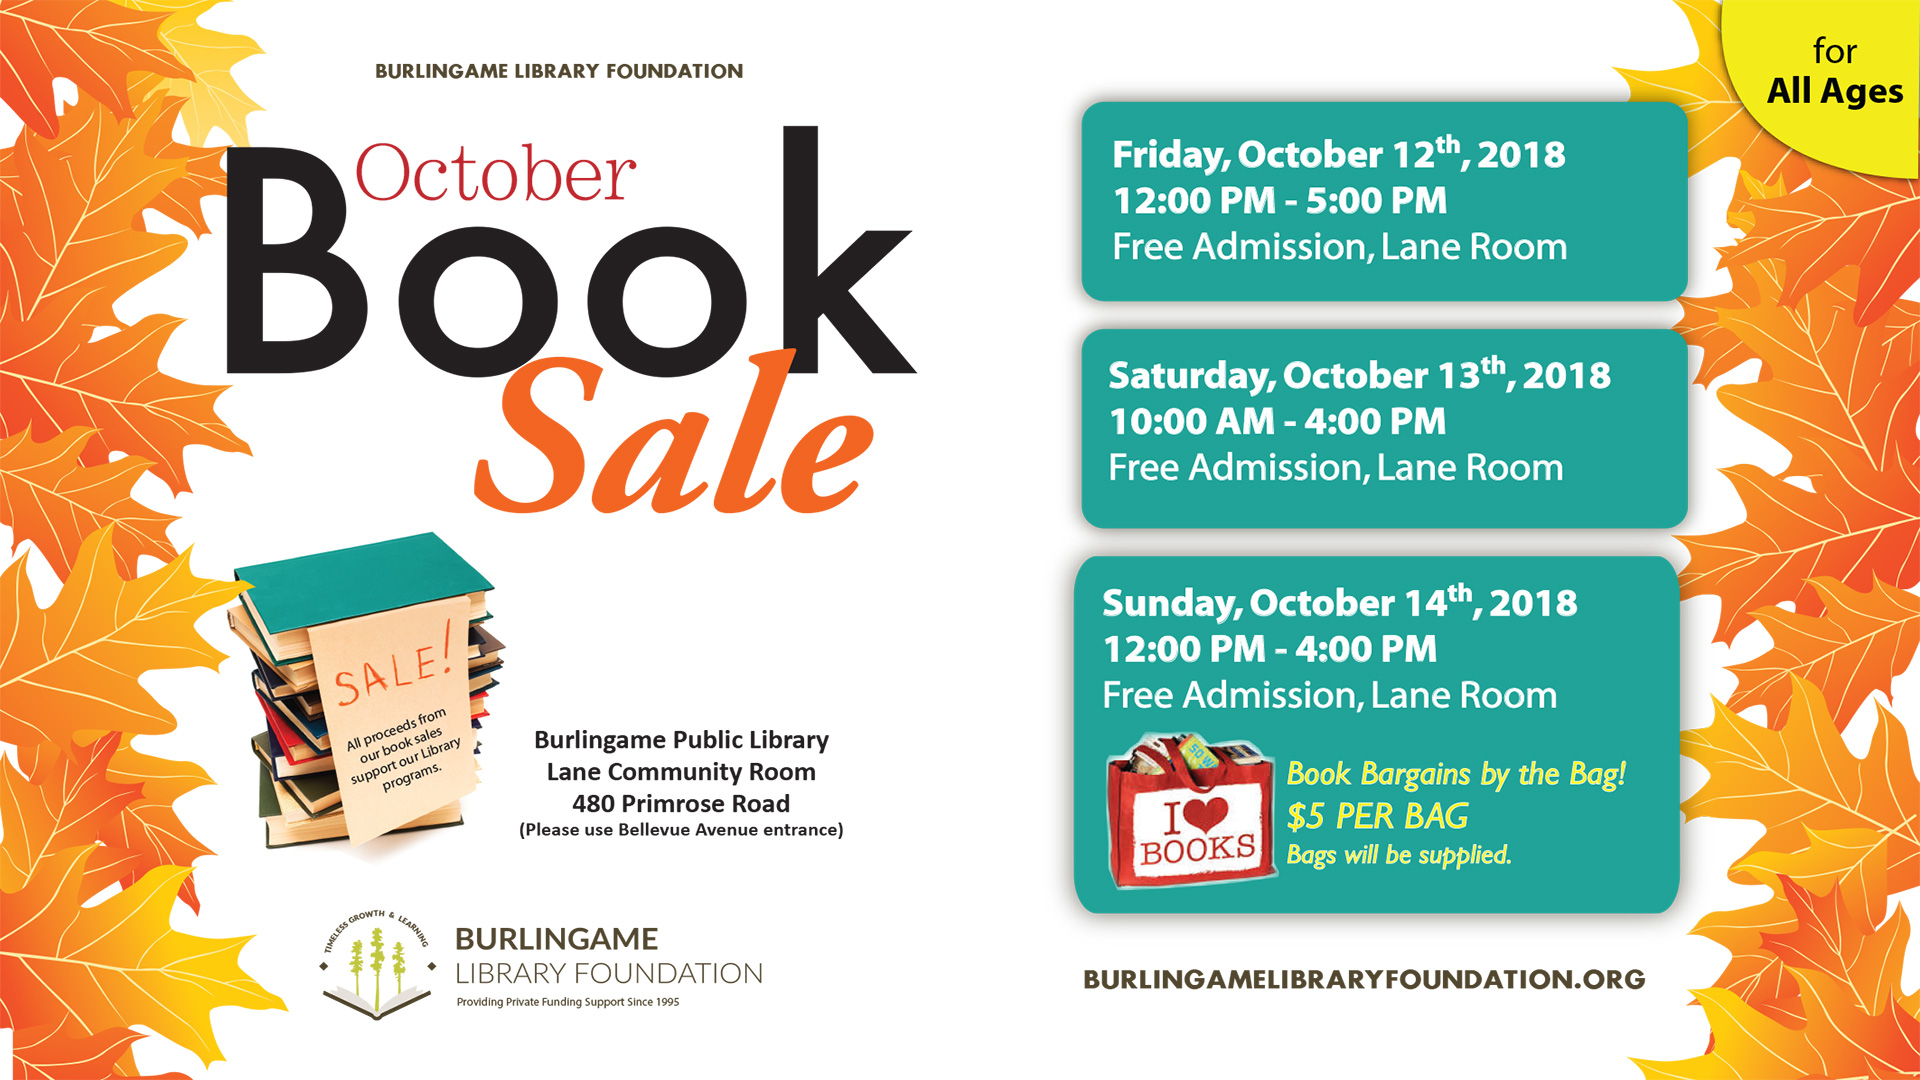 October Book Sale